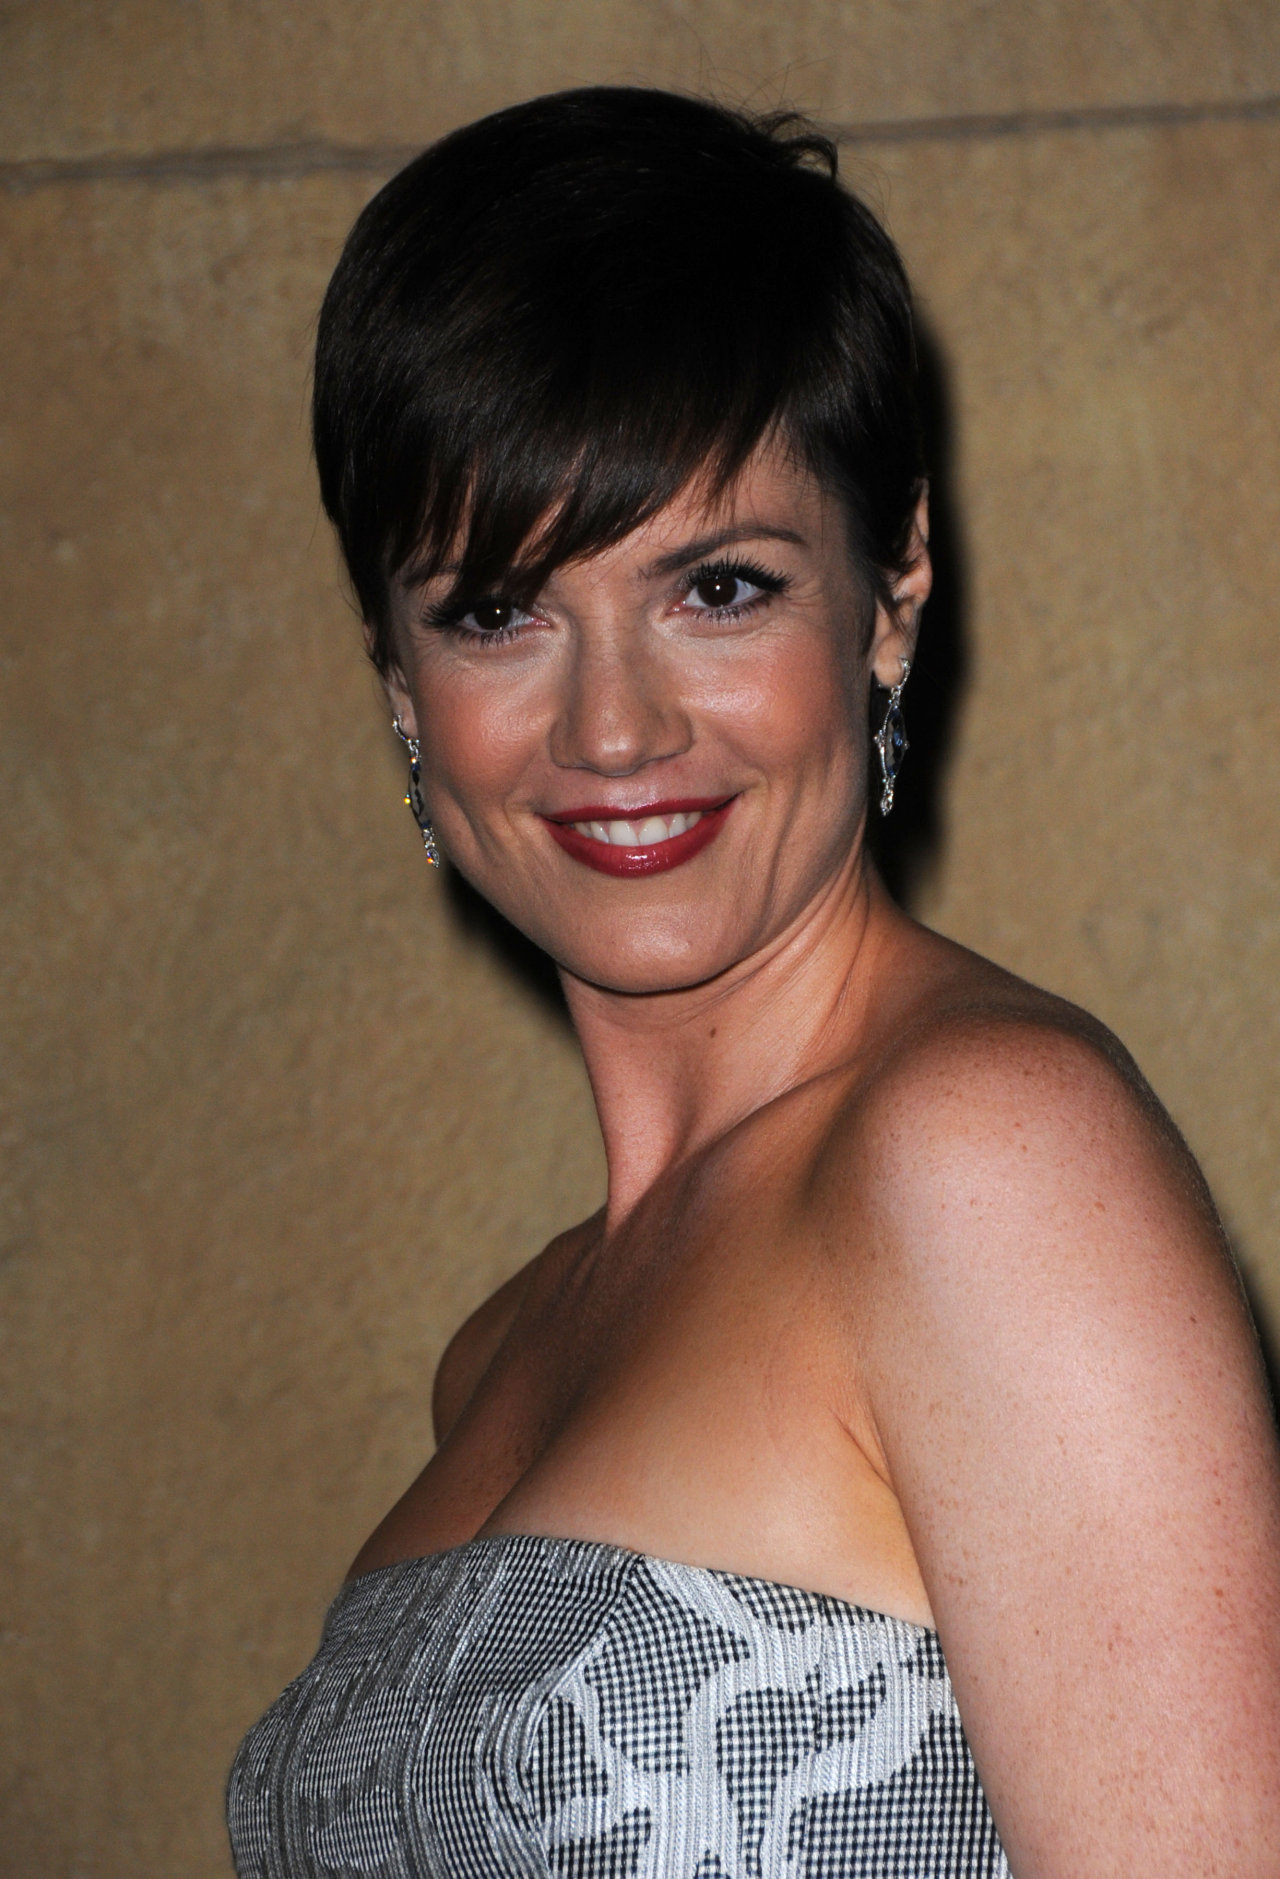 Zoe McLellan nudes (73 photo), Sexy, Cleavage, Boobs, legs 2017